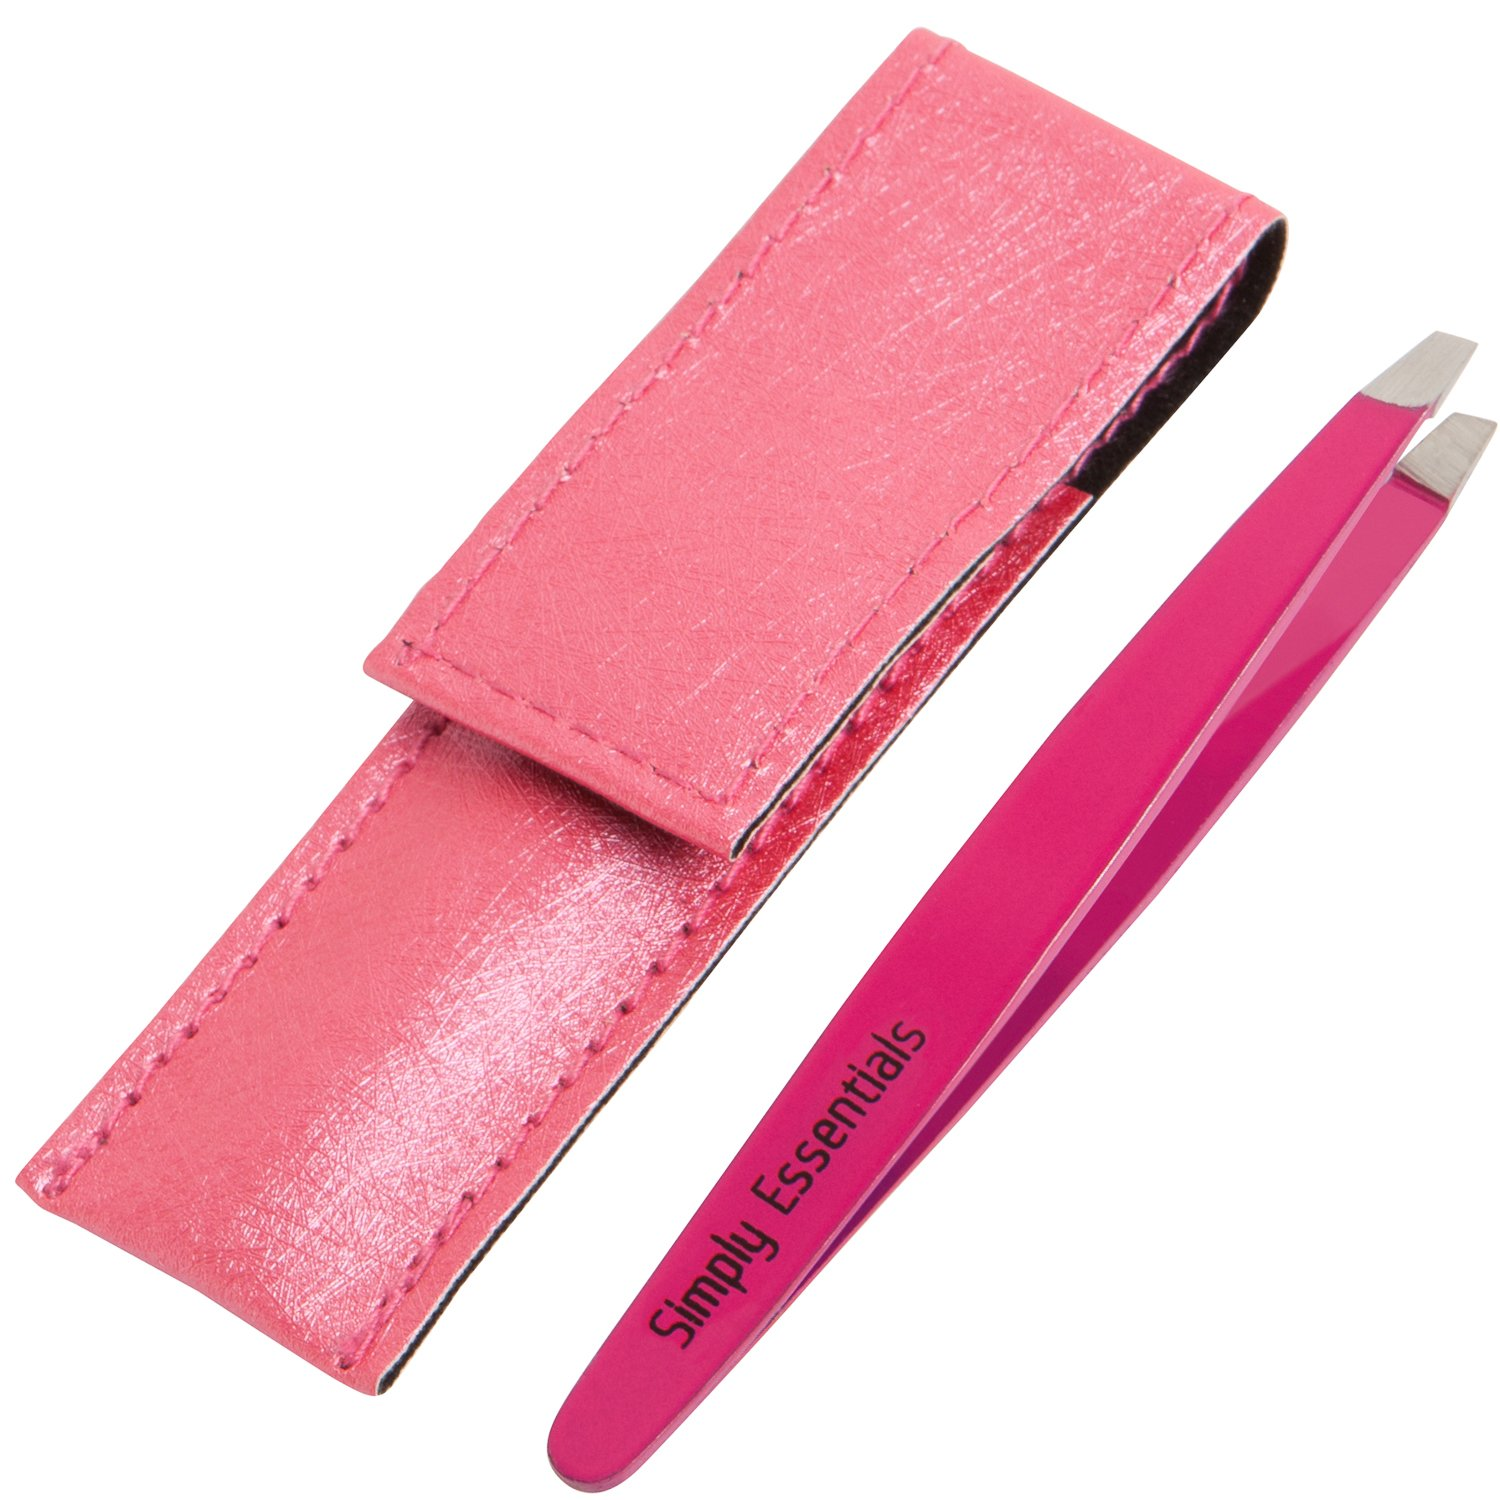 BEST SLANT TWEEZERS PINK Set Includes Prlme Day CASE and Ebook - Precision Eyebrows Tweezer - Stainless Steel - For Beautiful Eyebrows!